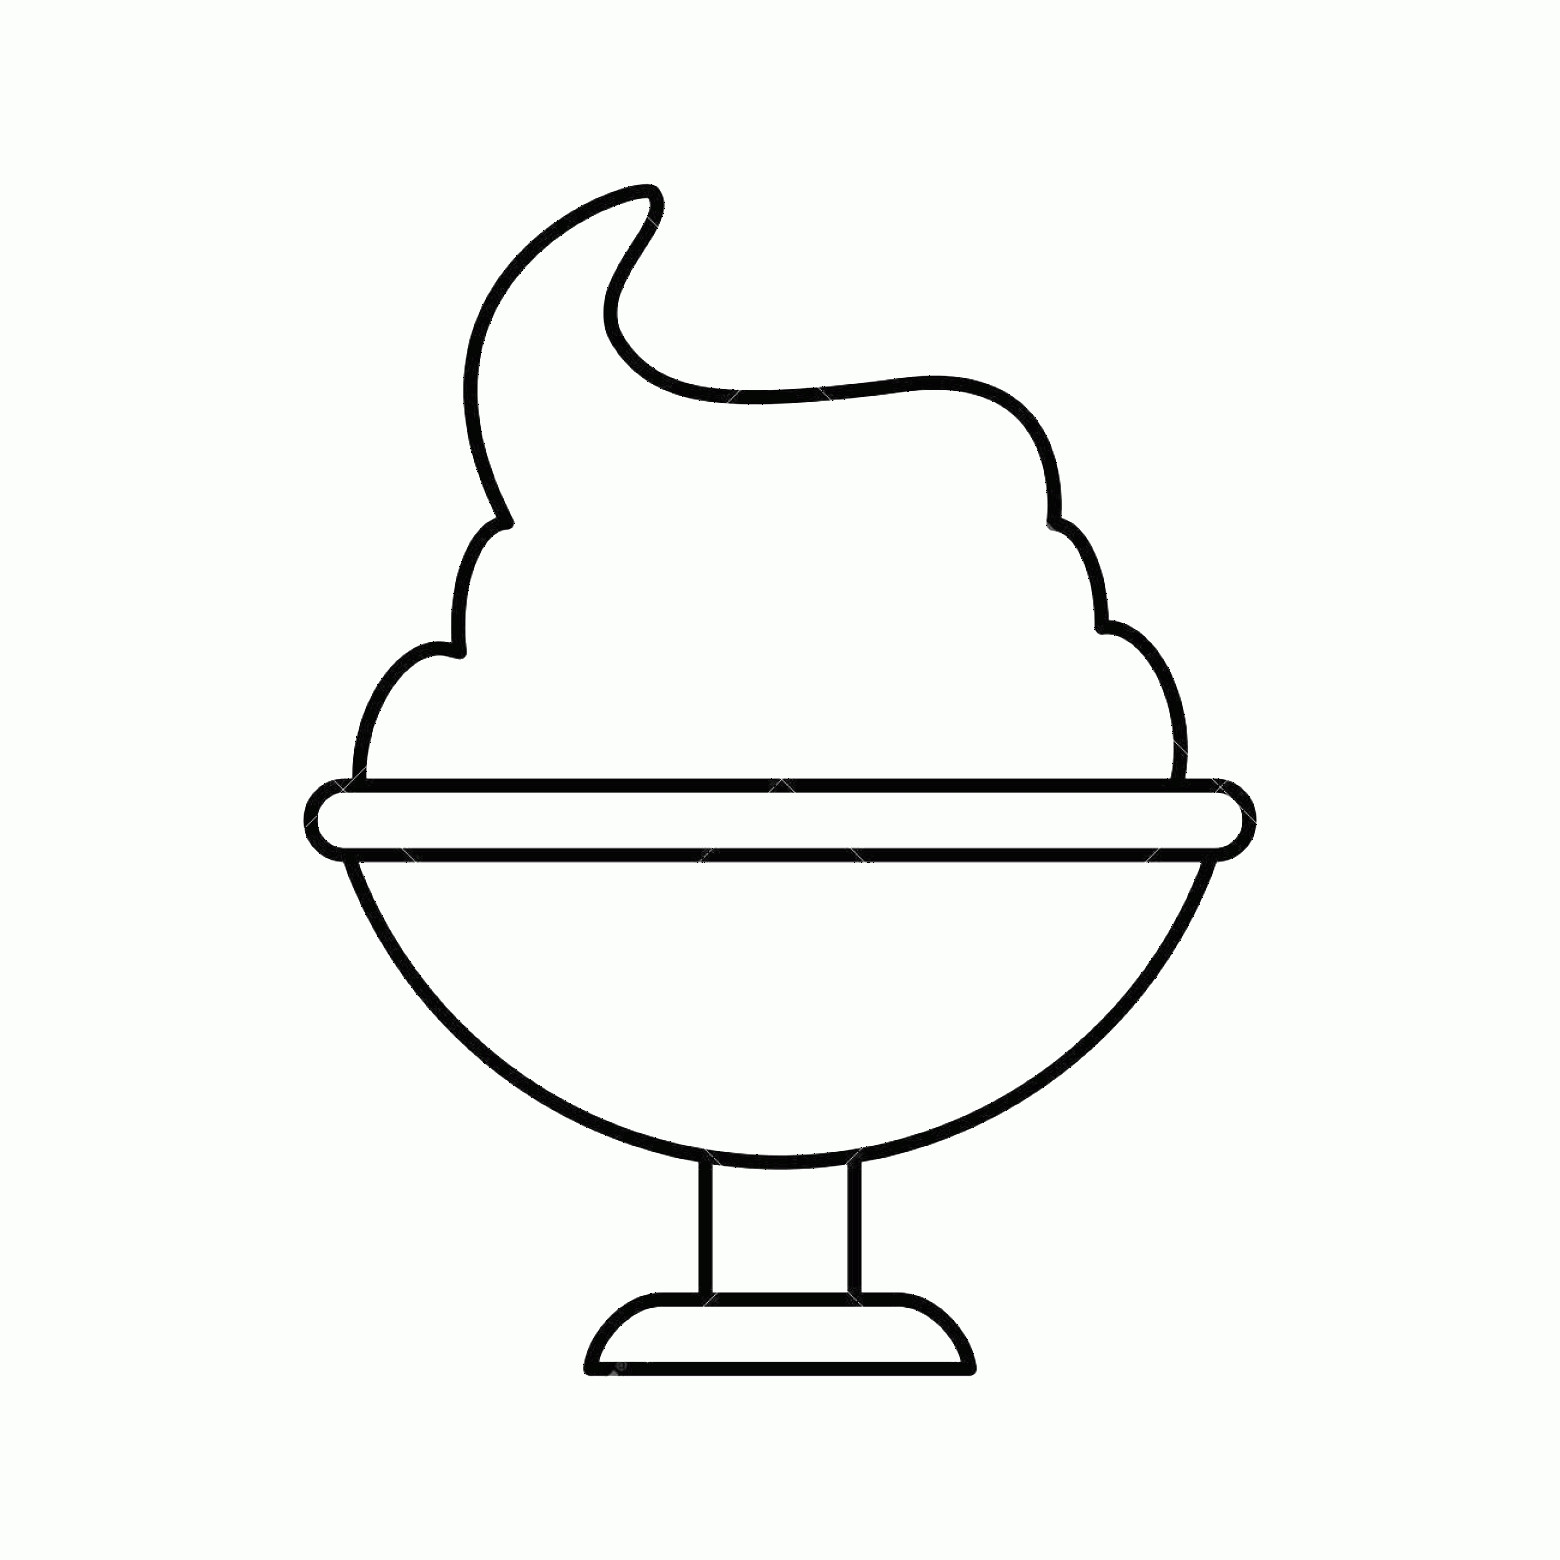 Black Cup Ice Cream Vector: Photostock Vector Ice Cream Cup Or Sundae Icon Image Vector Illustration Design Black Line